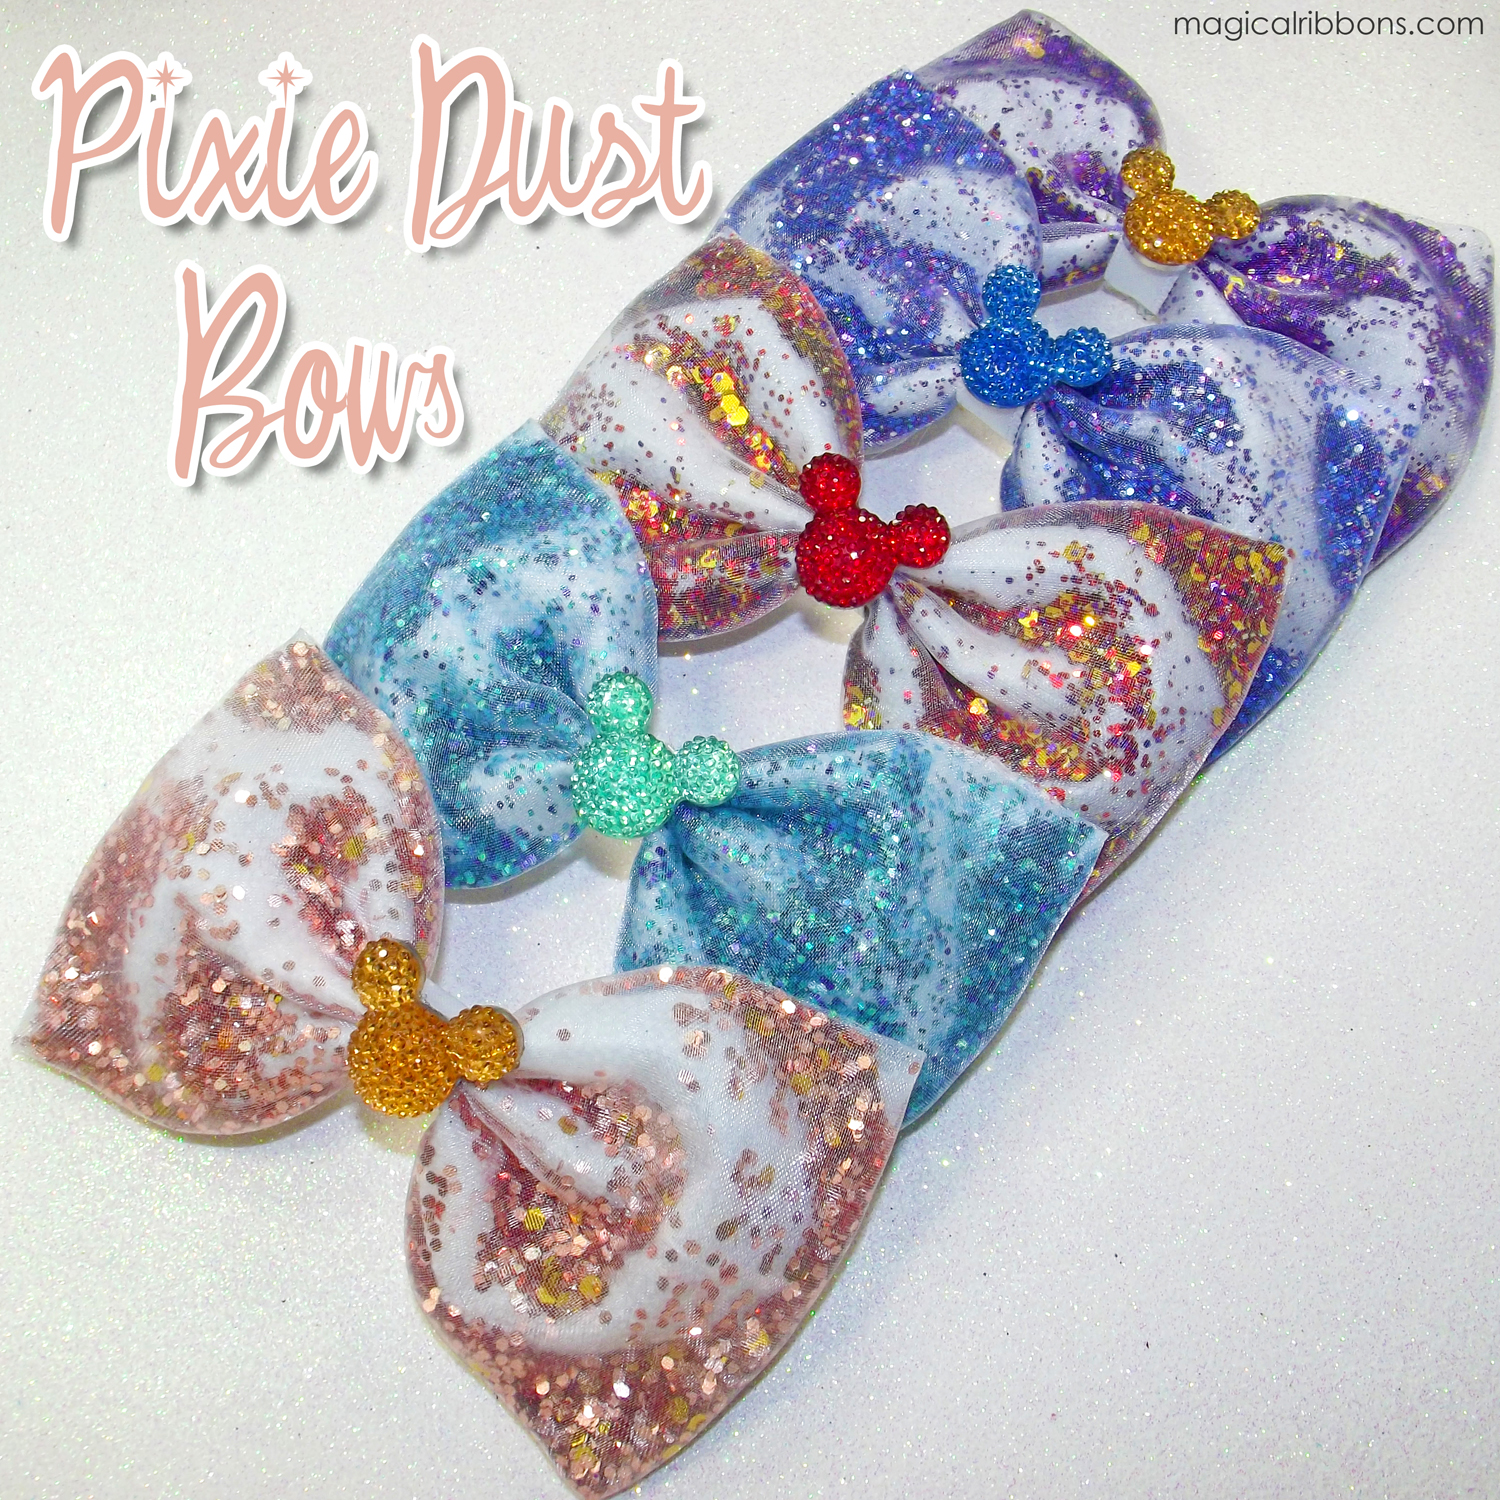 Pixie Dust Bows Magical Ribbons